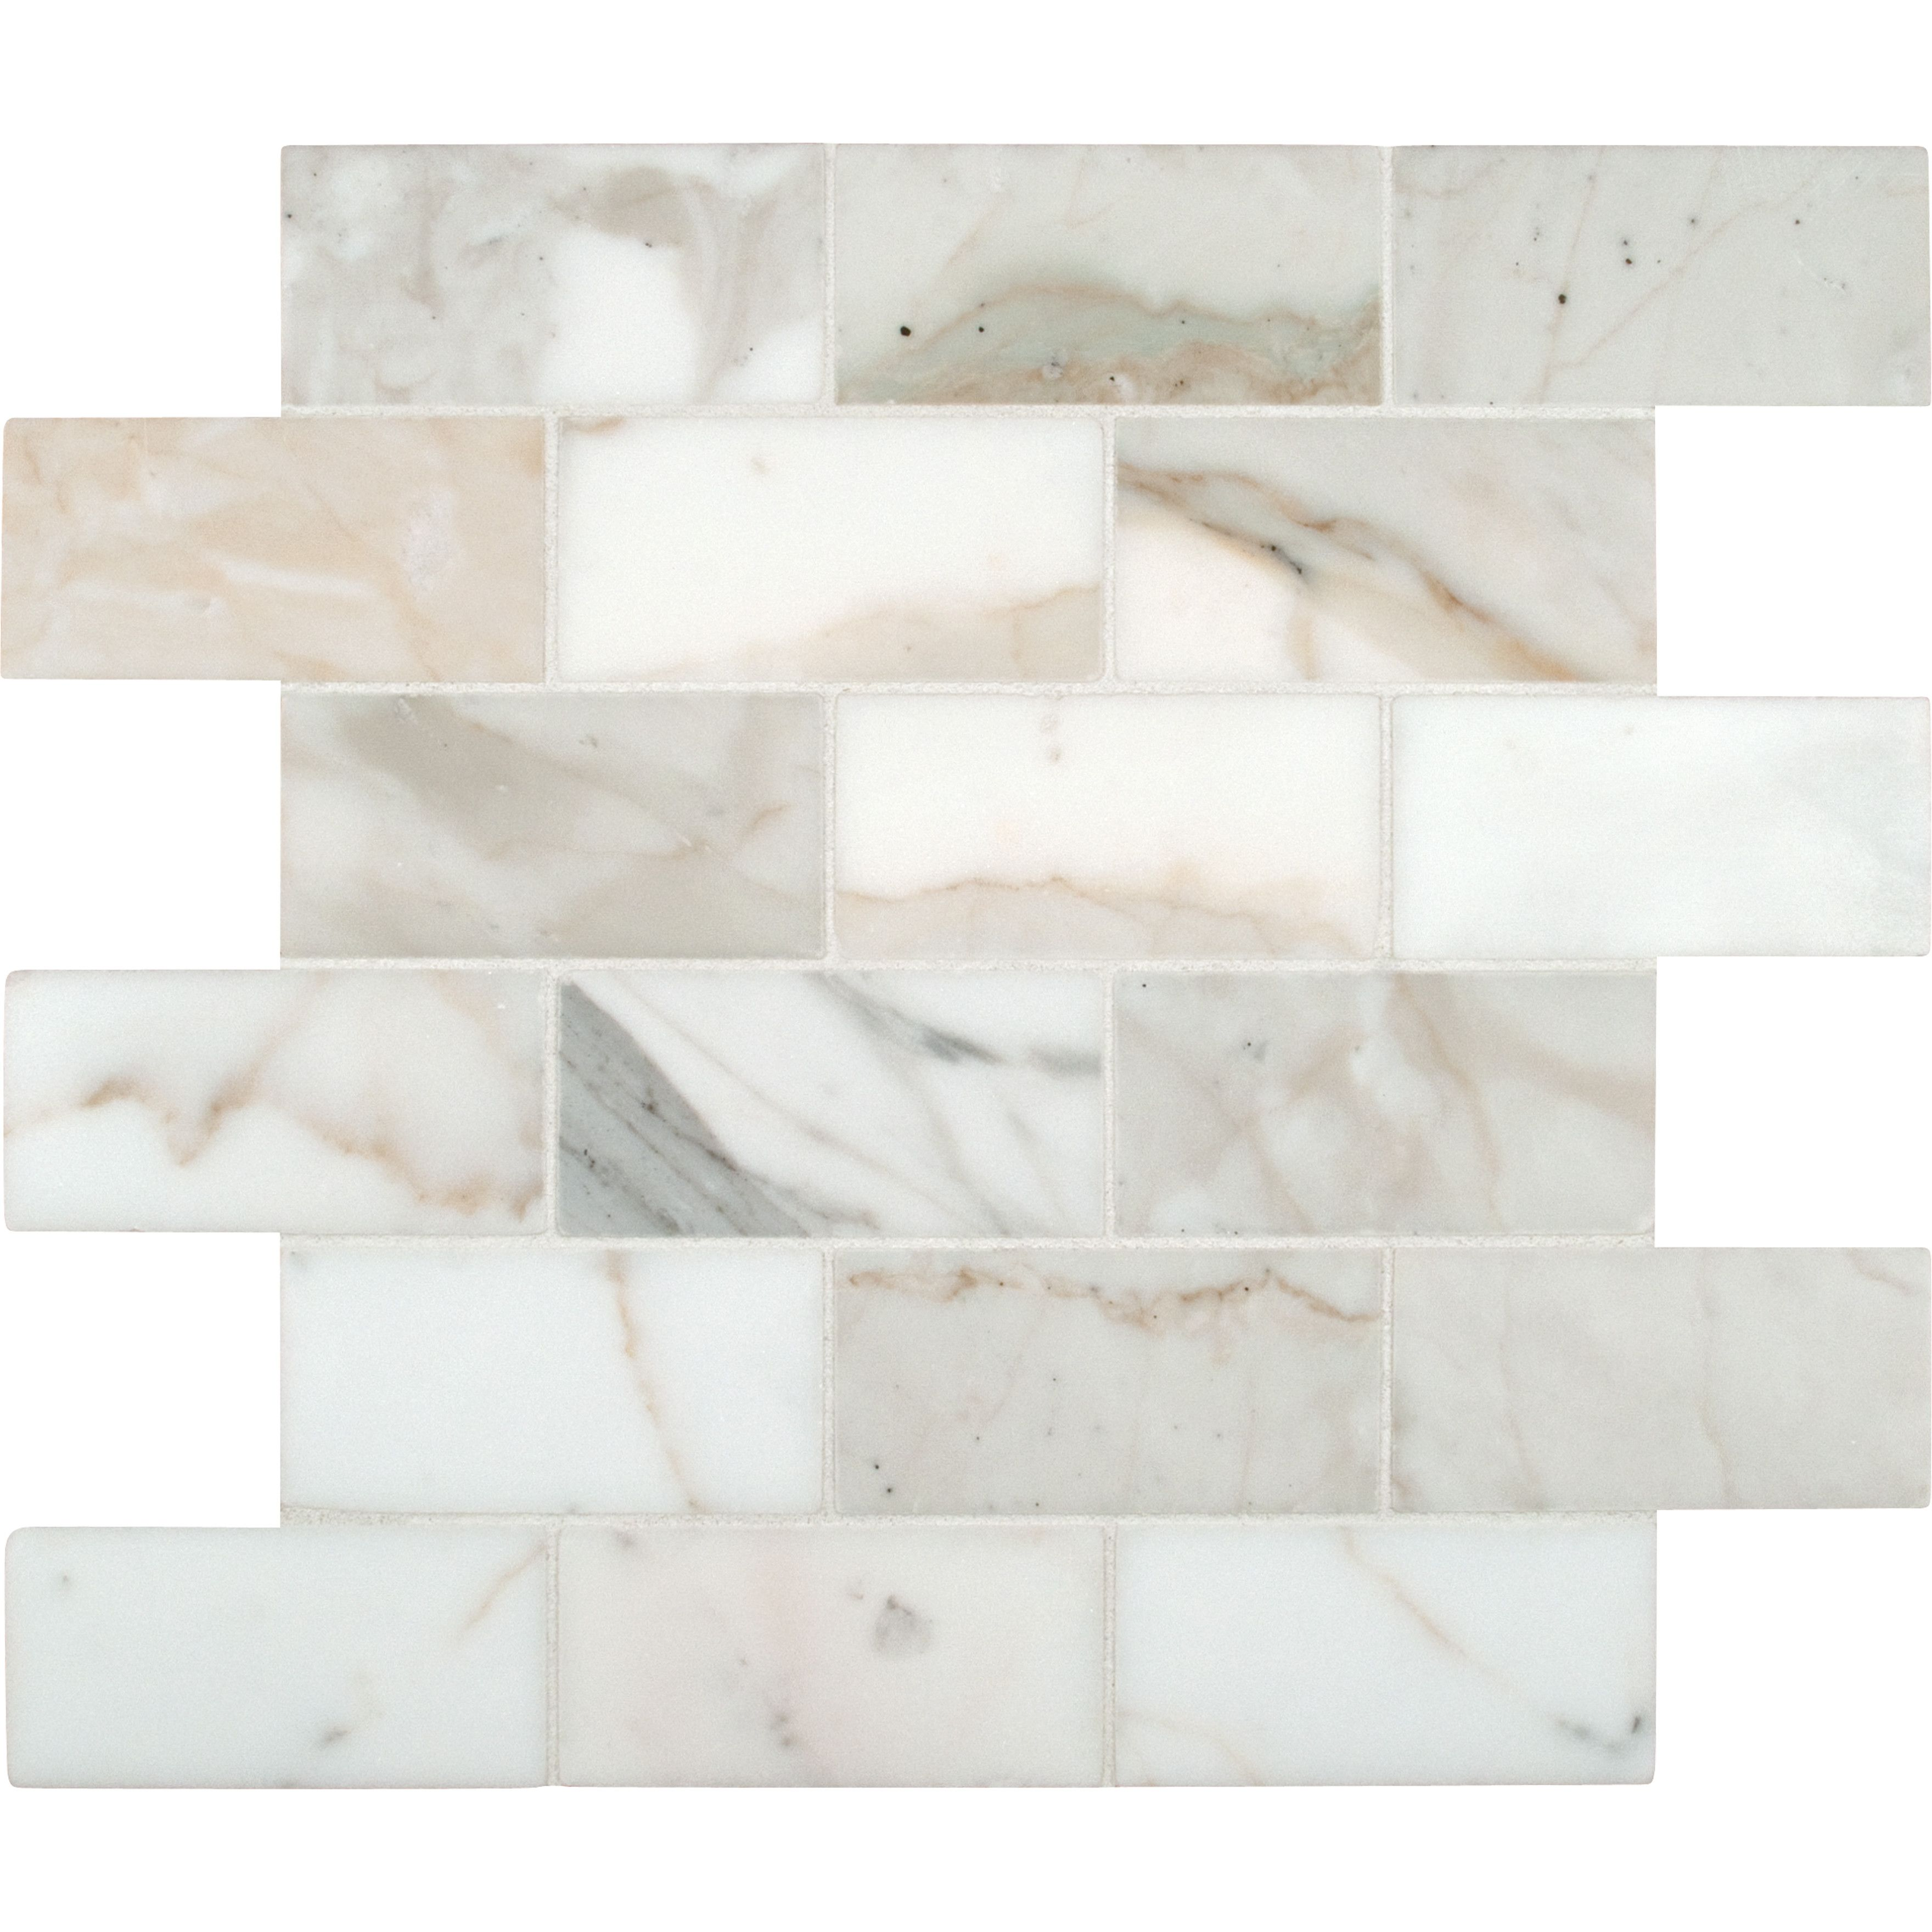 Calacatta gold mounted 2 x 4 marble subway tile in white calacatta gold mounted 2 x 4 marble subway tile in white dailygadgetfo Choice Image